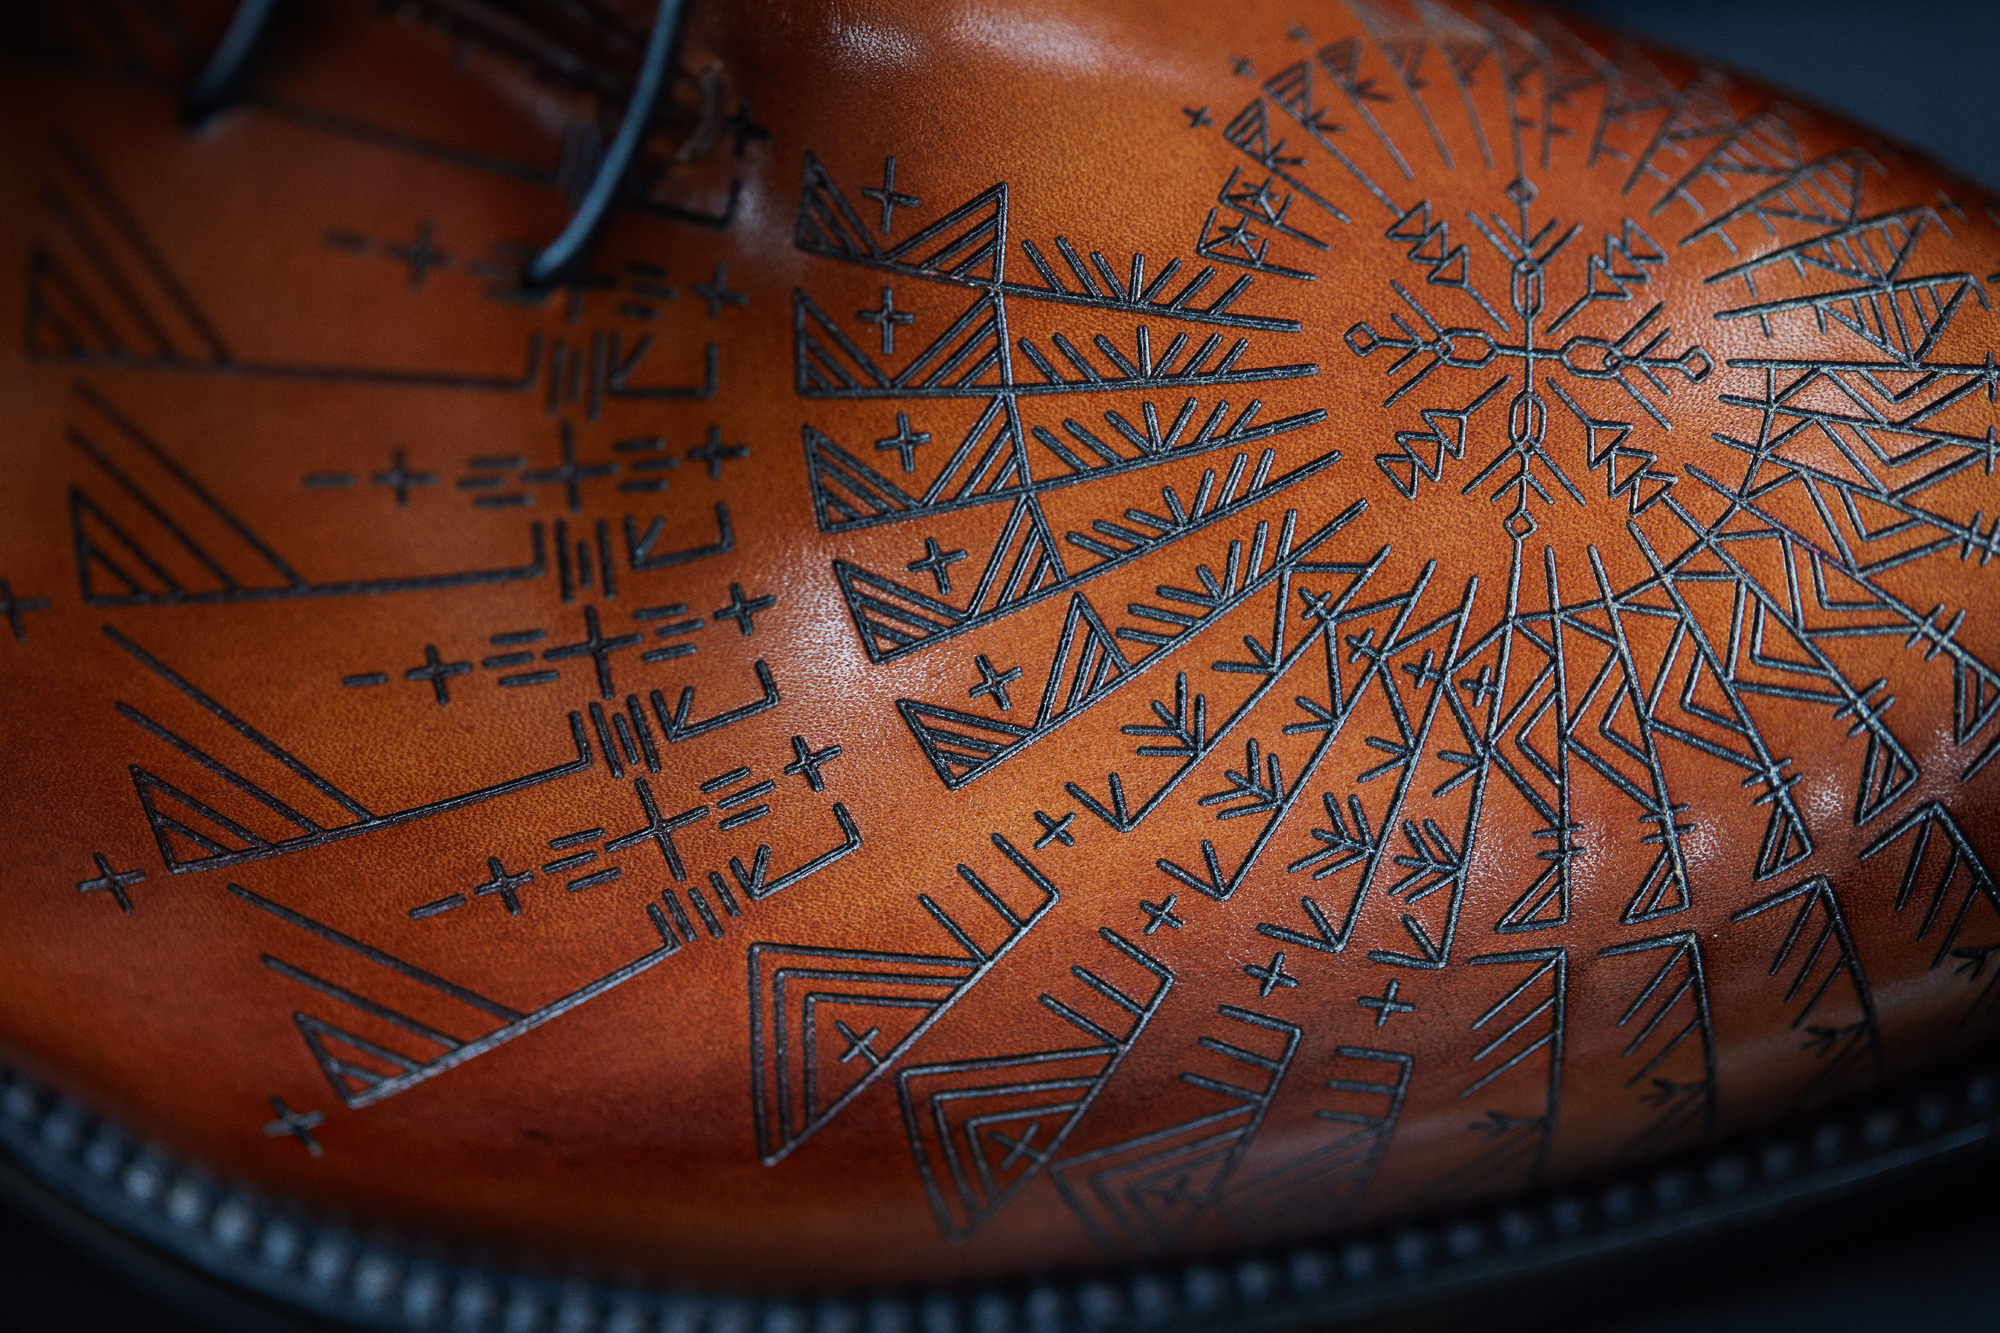 A DETAIL FROM A SHOE FEATURING A TATTOO